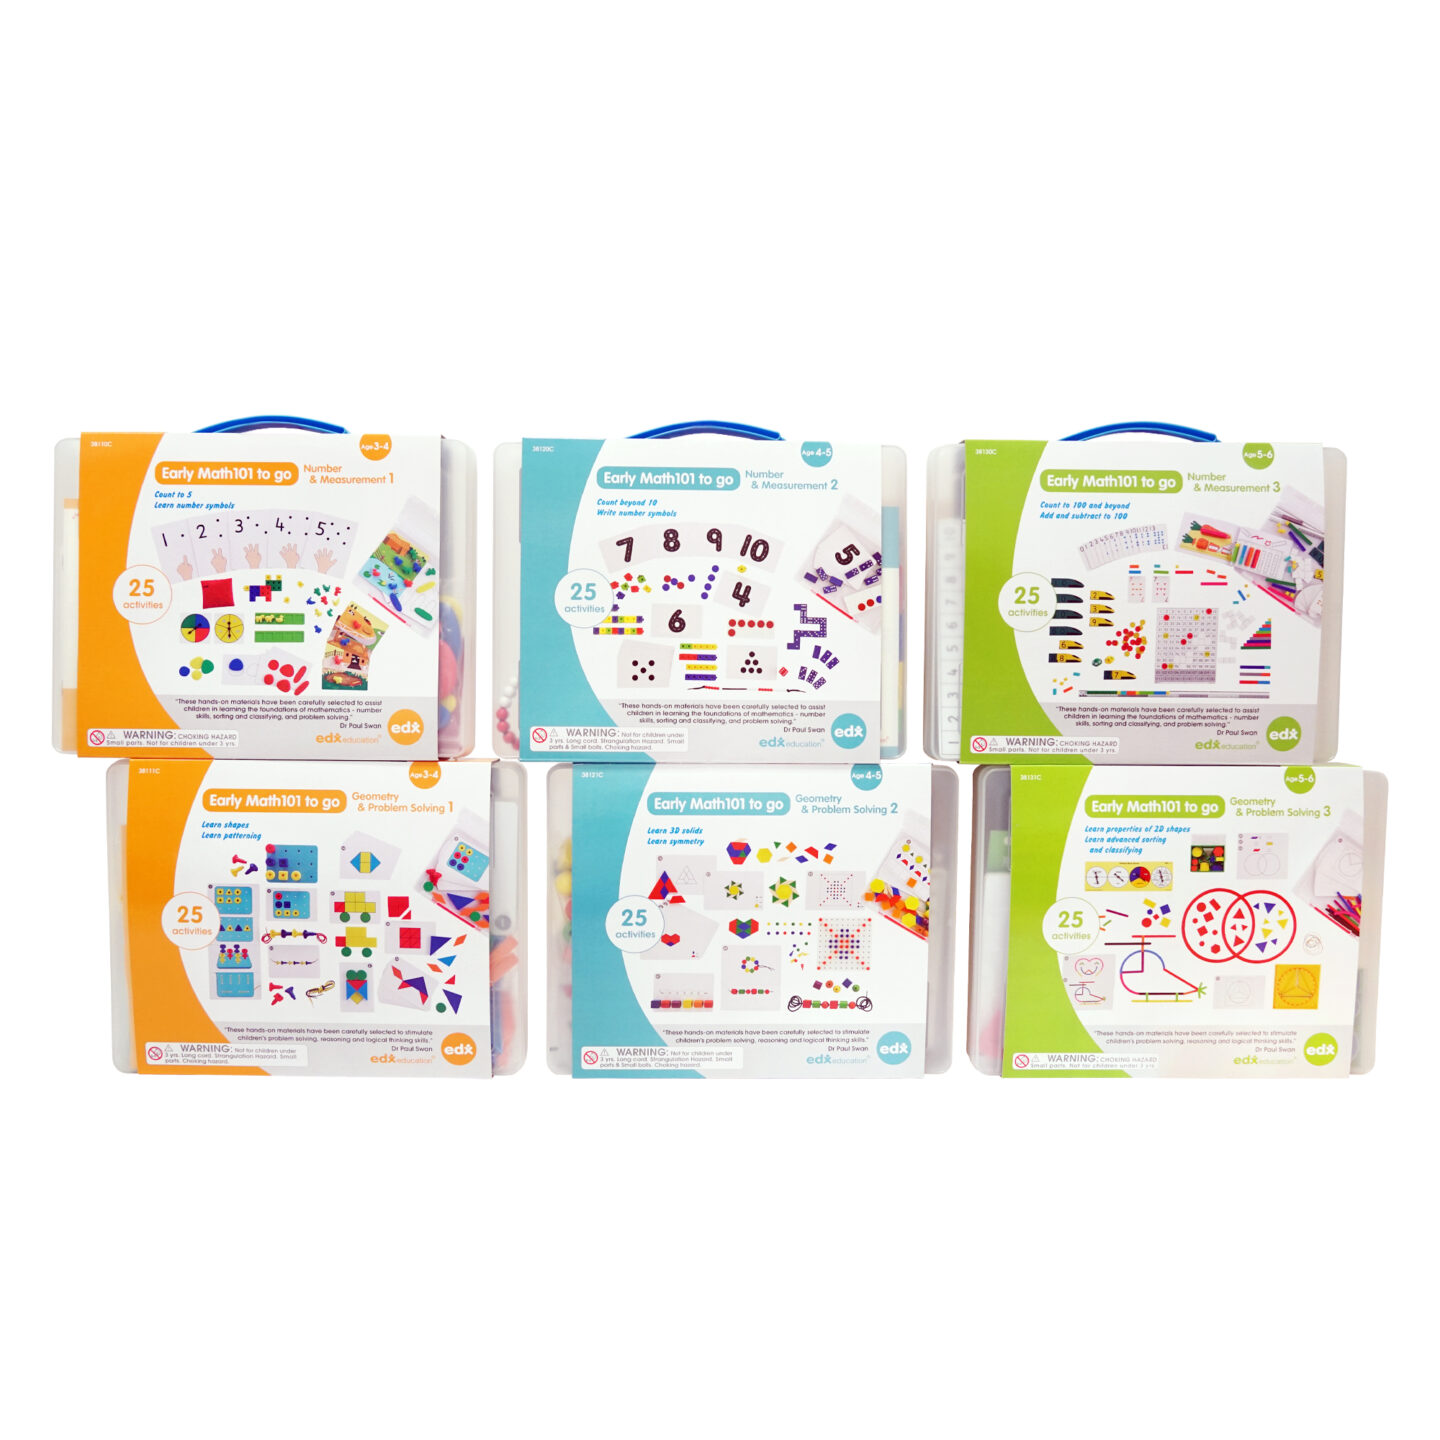 EDX Education Early Math101 Set, Online Learning, EDX Education, Learning Games, Maths Set, Learning Through Play, EDX Education Toys, Educational Materials, Back to School Giveaway, Win, Competitions, the Frenchie Mummy